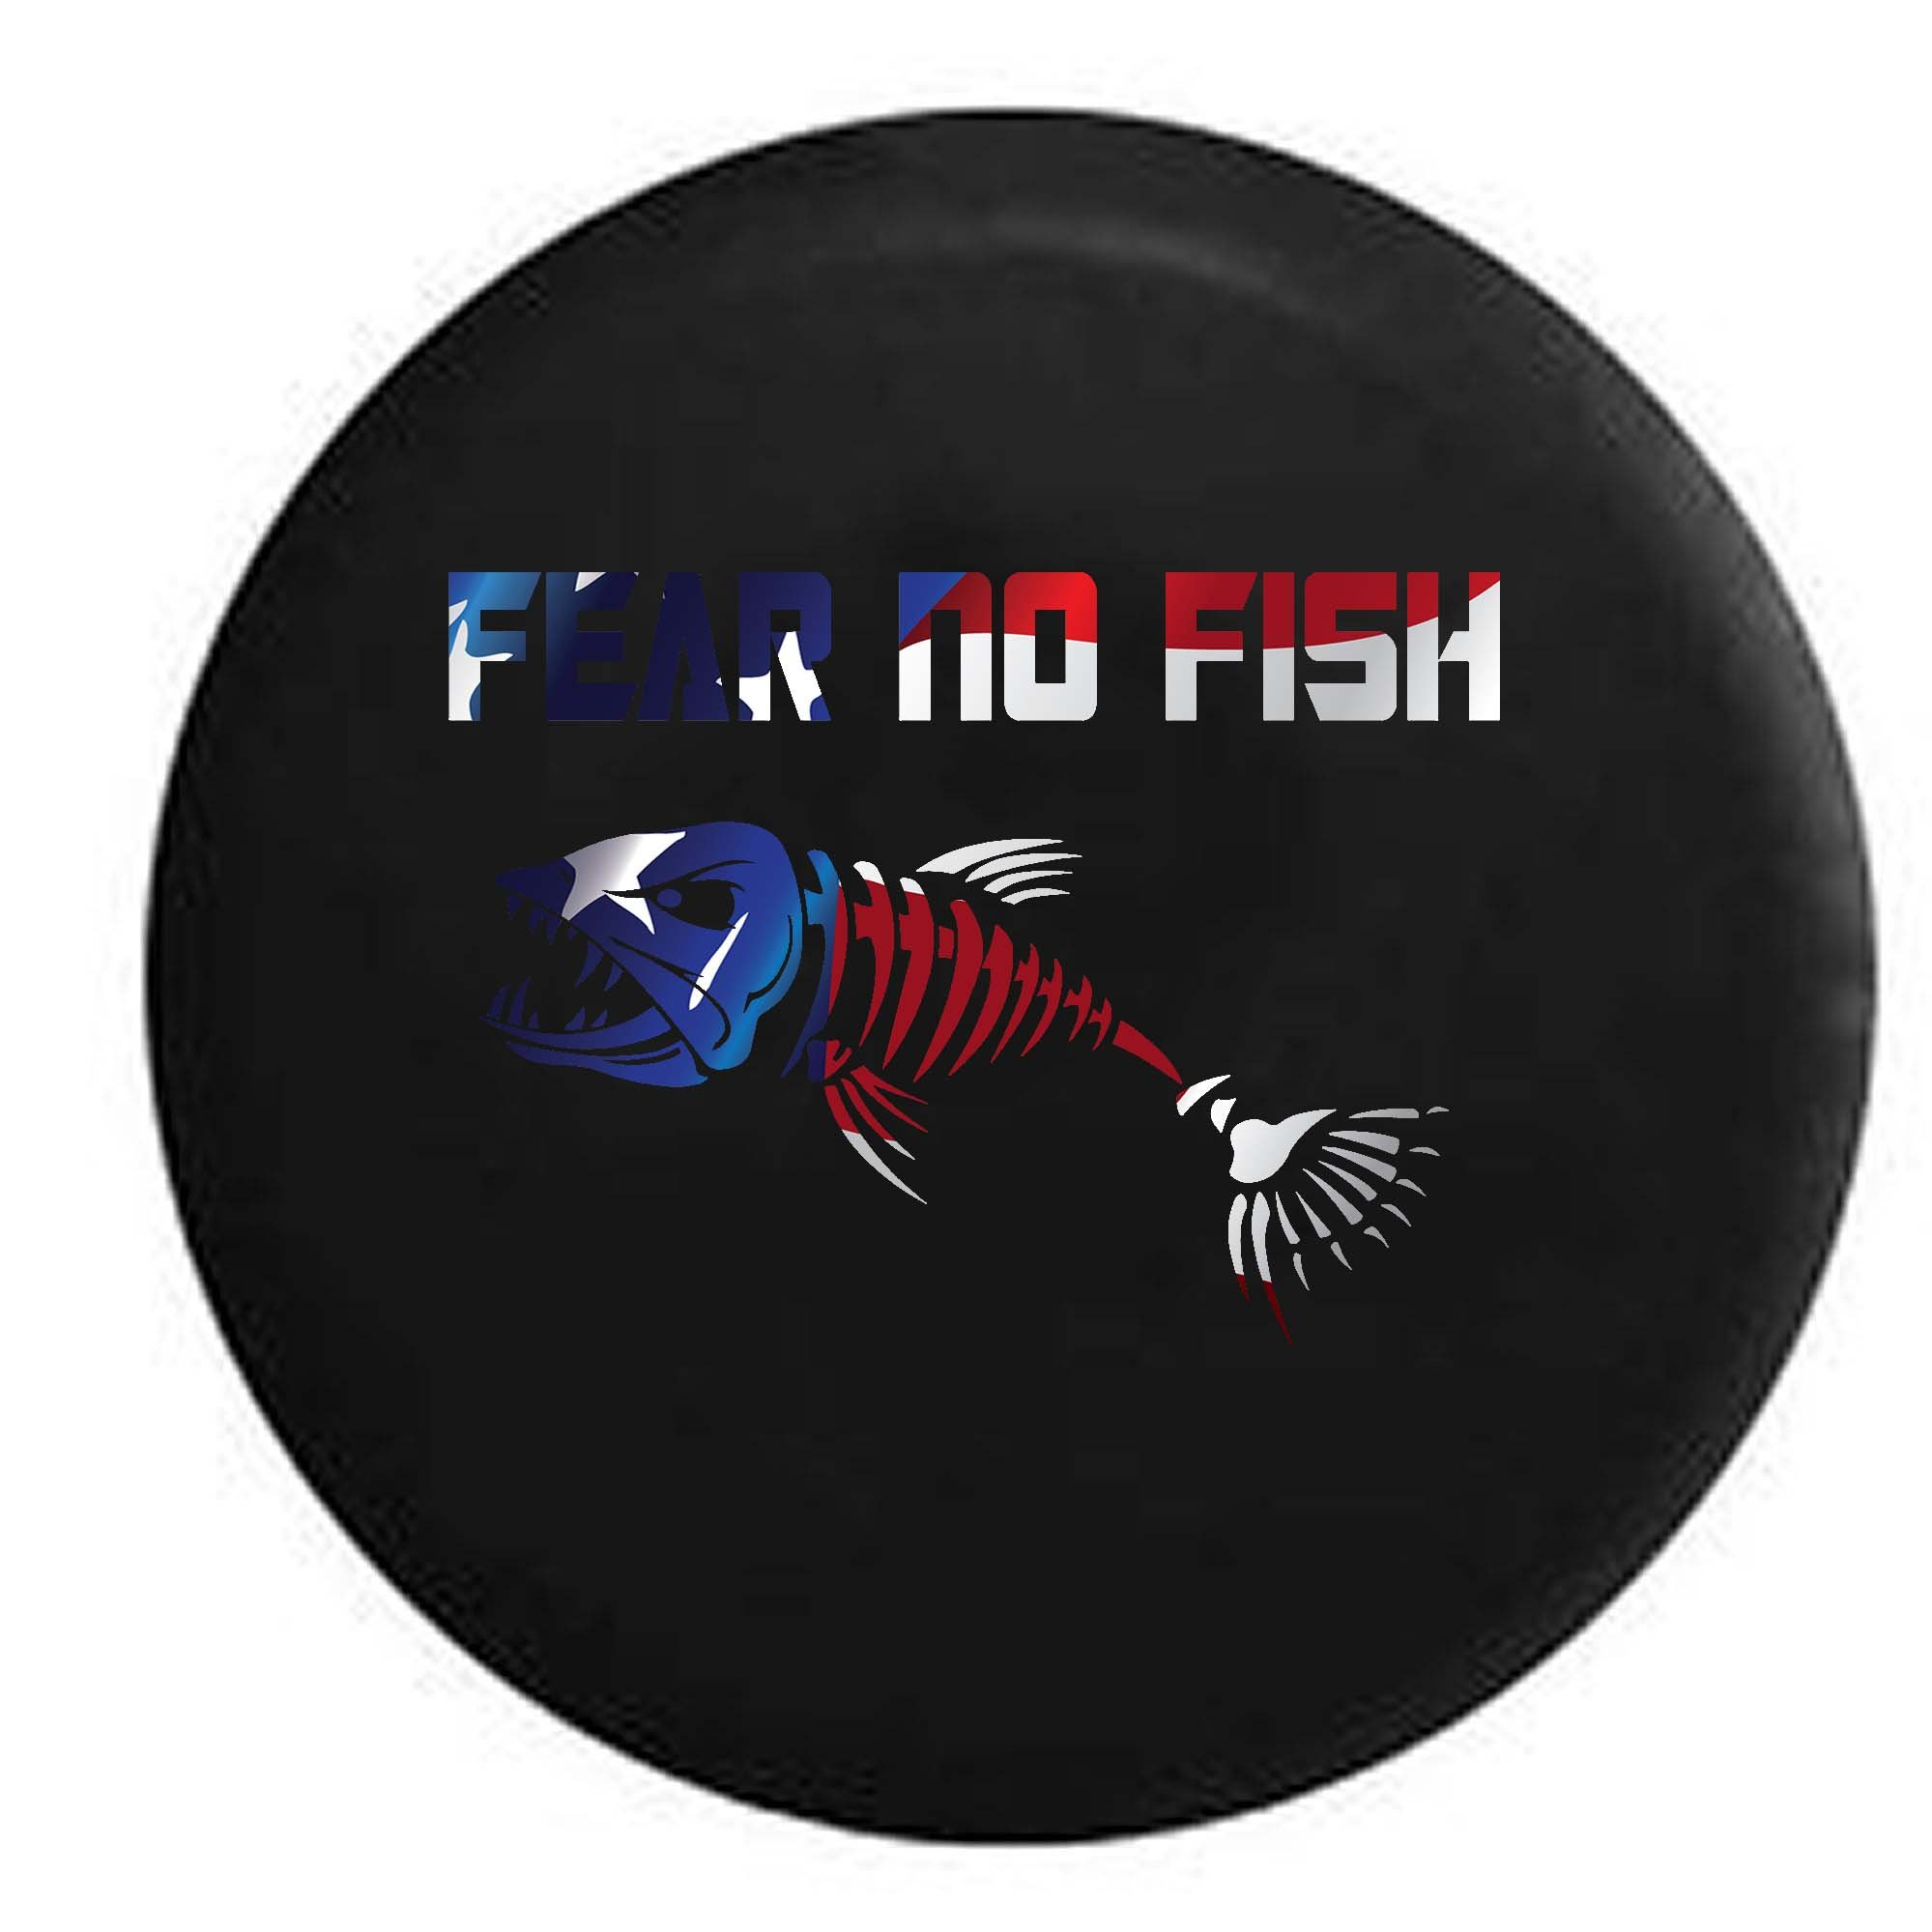 Pike Flag - Fear No Fish Skeleton Fishing Hunting Bass Walleye Trailer RV Spare Tire Cover OEM Vinyl Black 30 in by Pike Outdoors